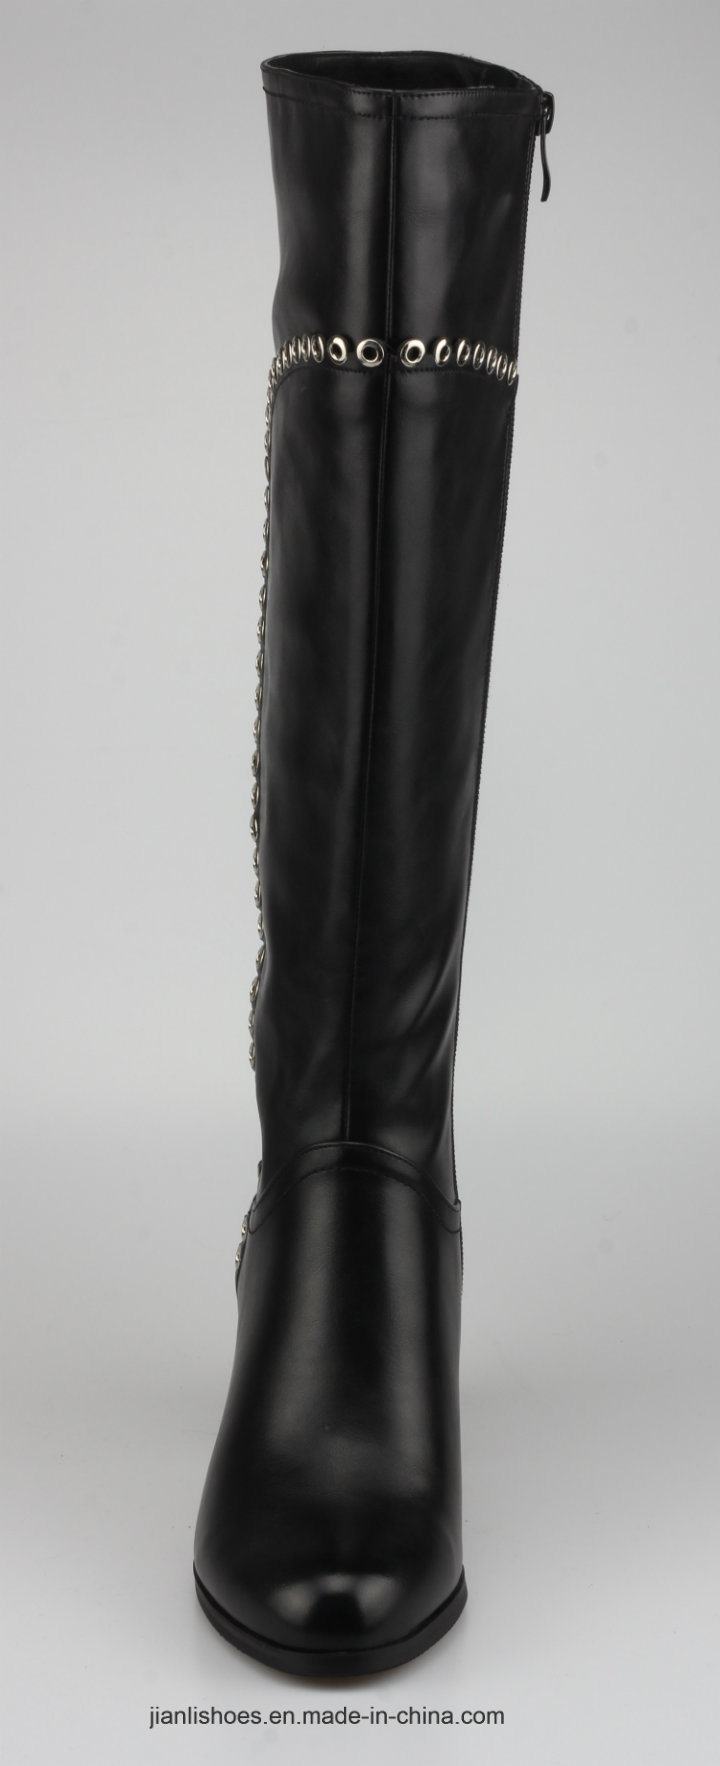 2018 Classic Style PU Knee-High Women Boots with Rivet Decoration (BT752)